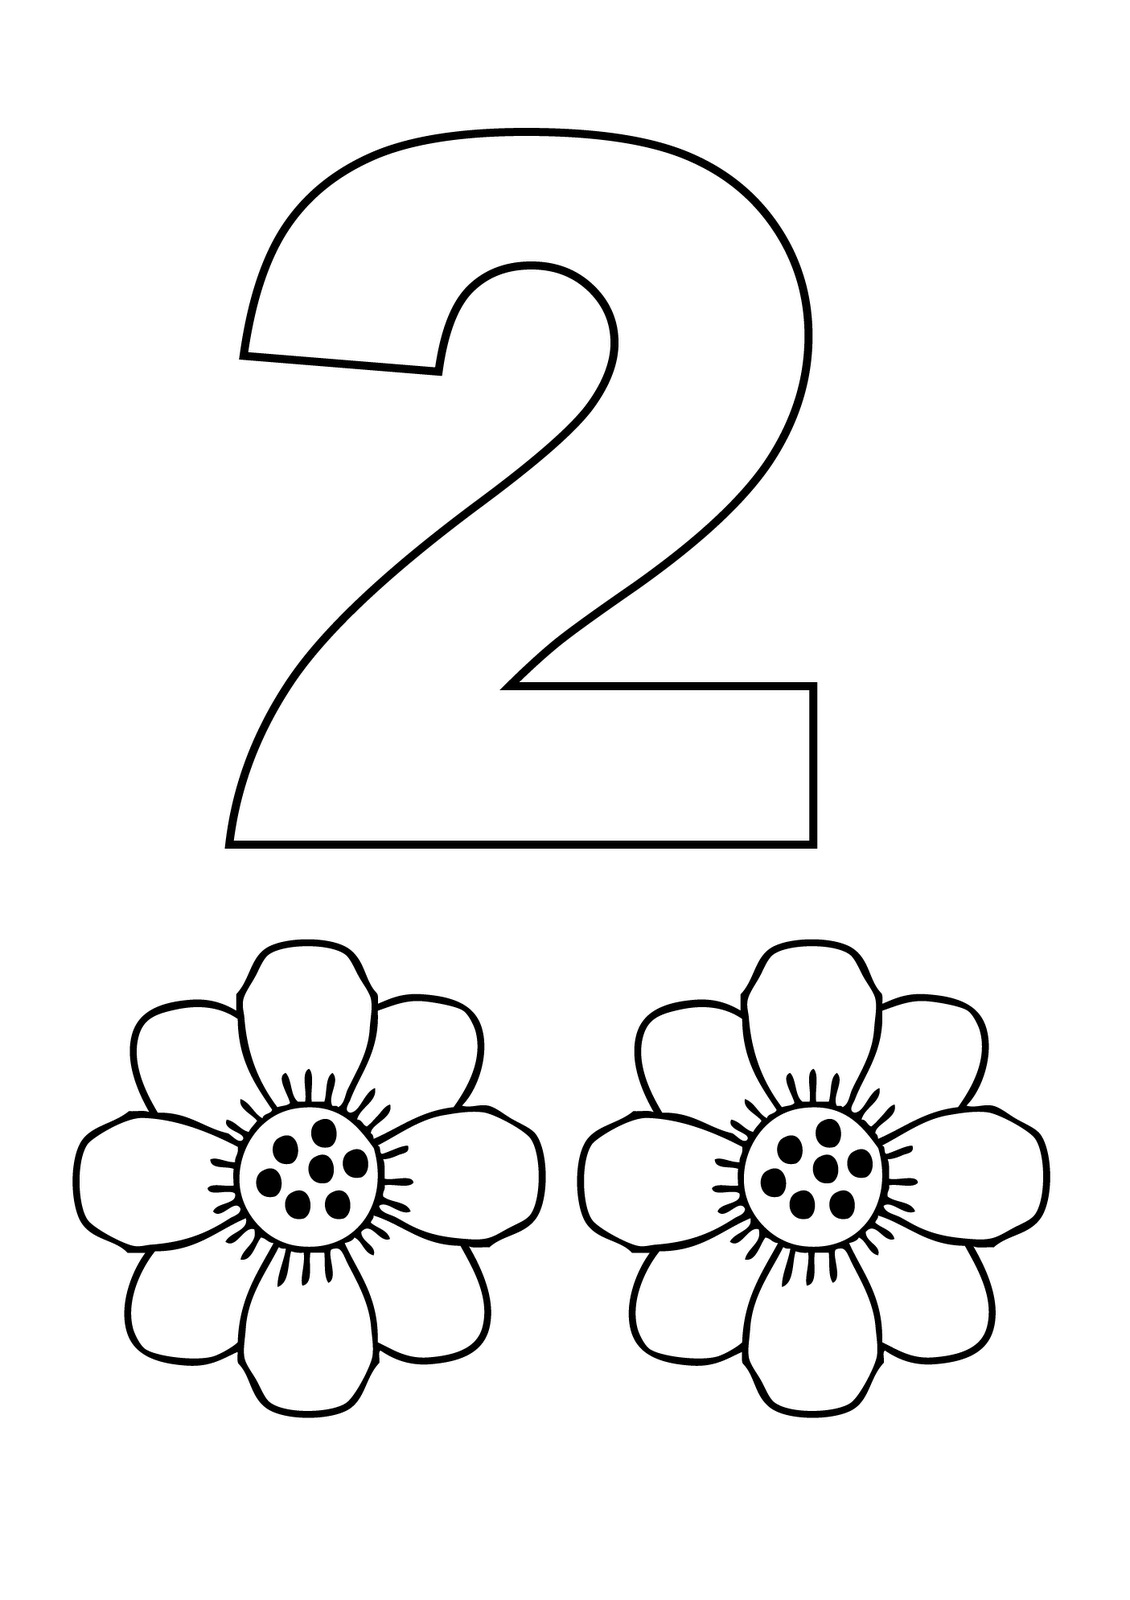 2 coloring page number 2 coloring pages coloring home page coloring 2